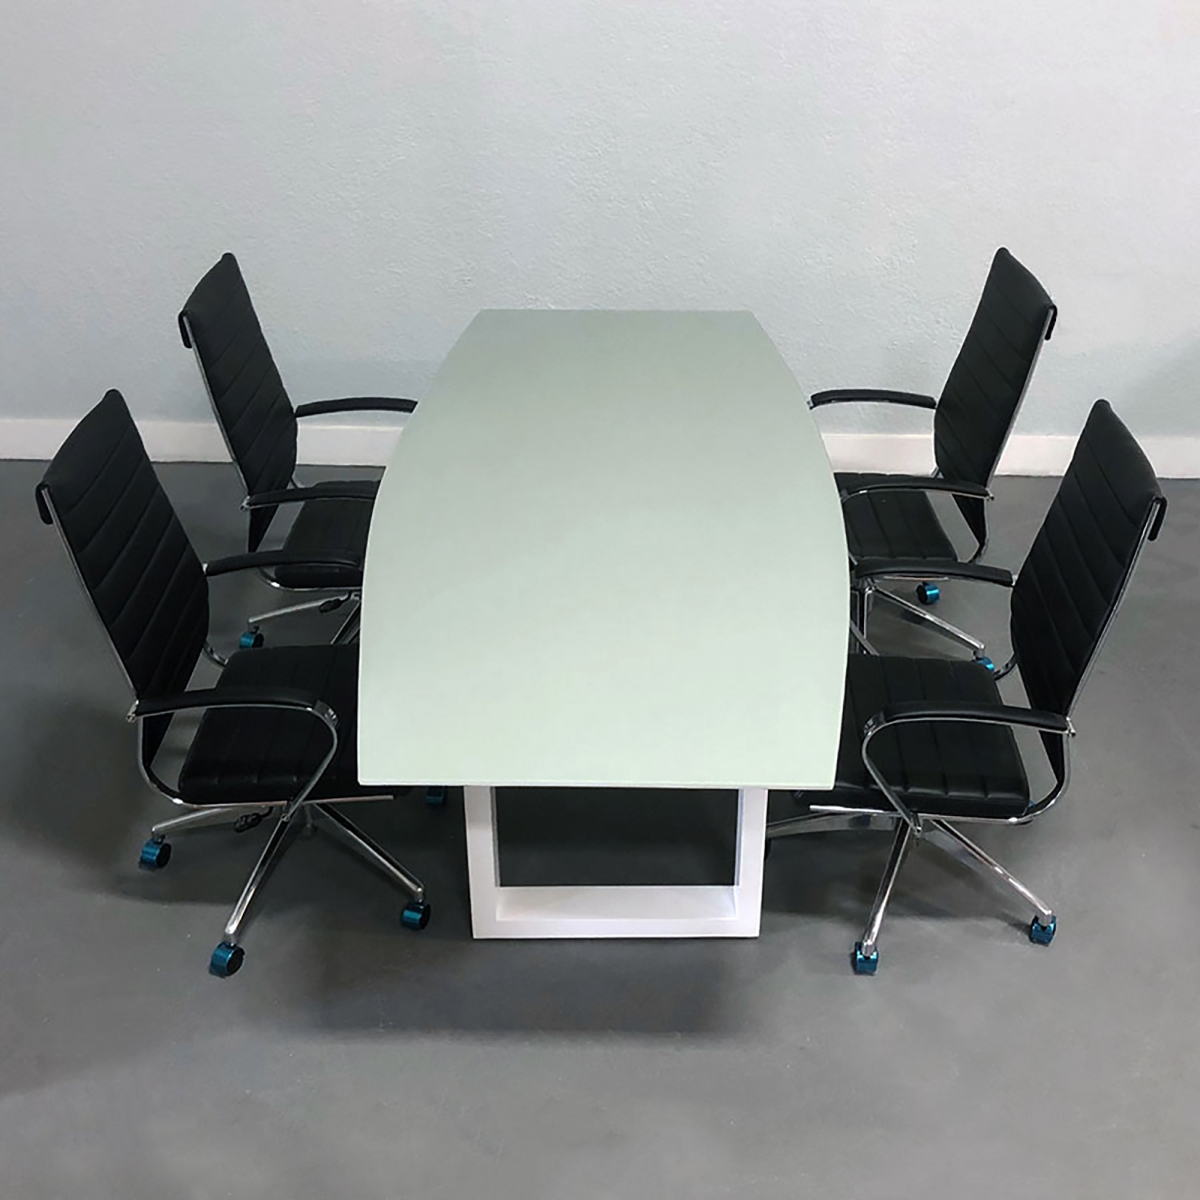 Axis Boat Shape Glass Meeting Table